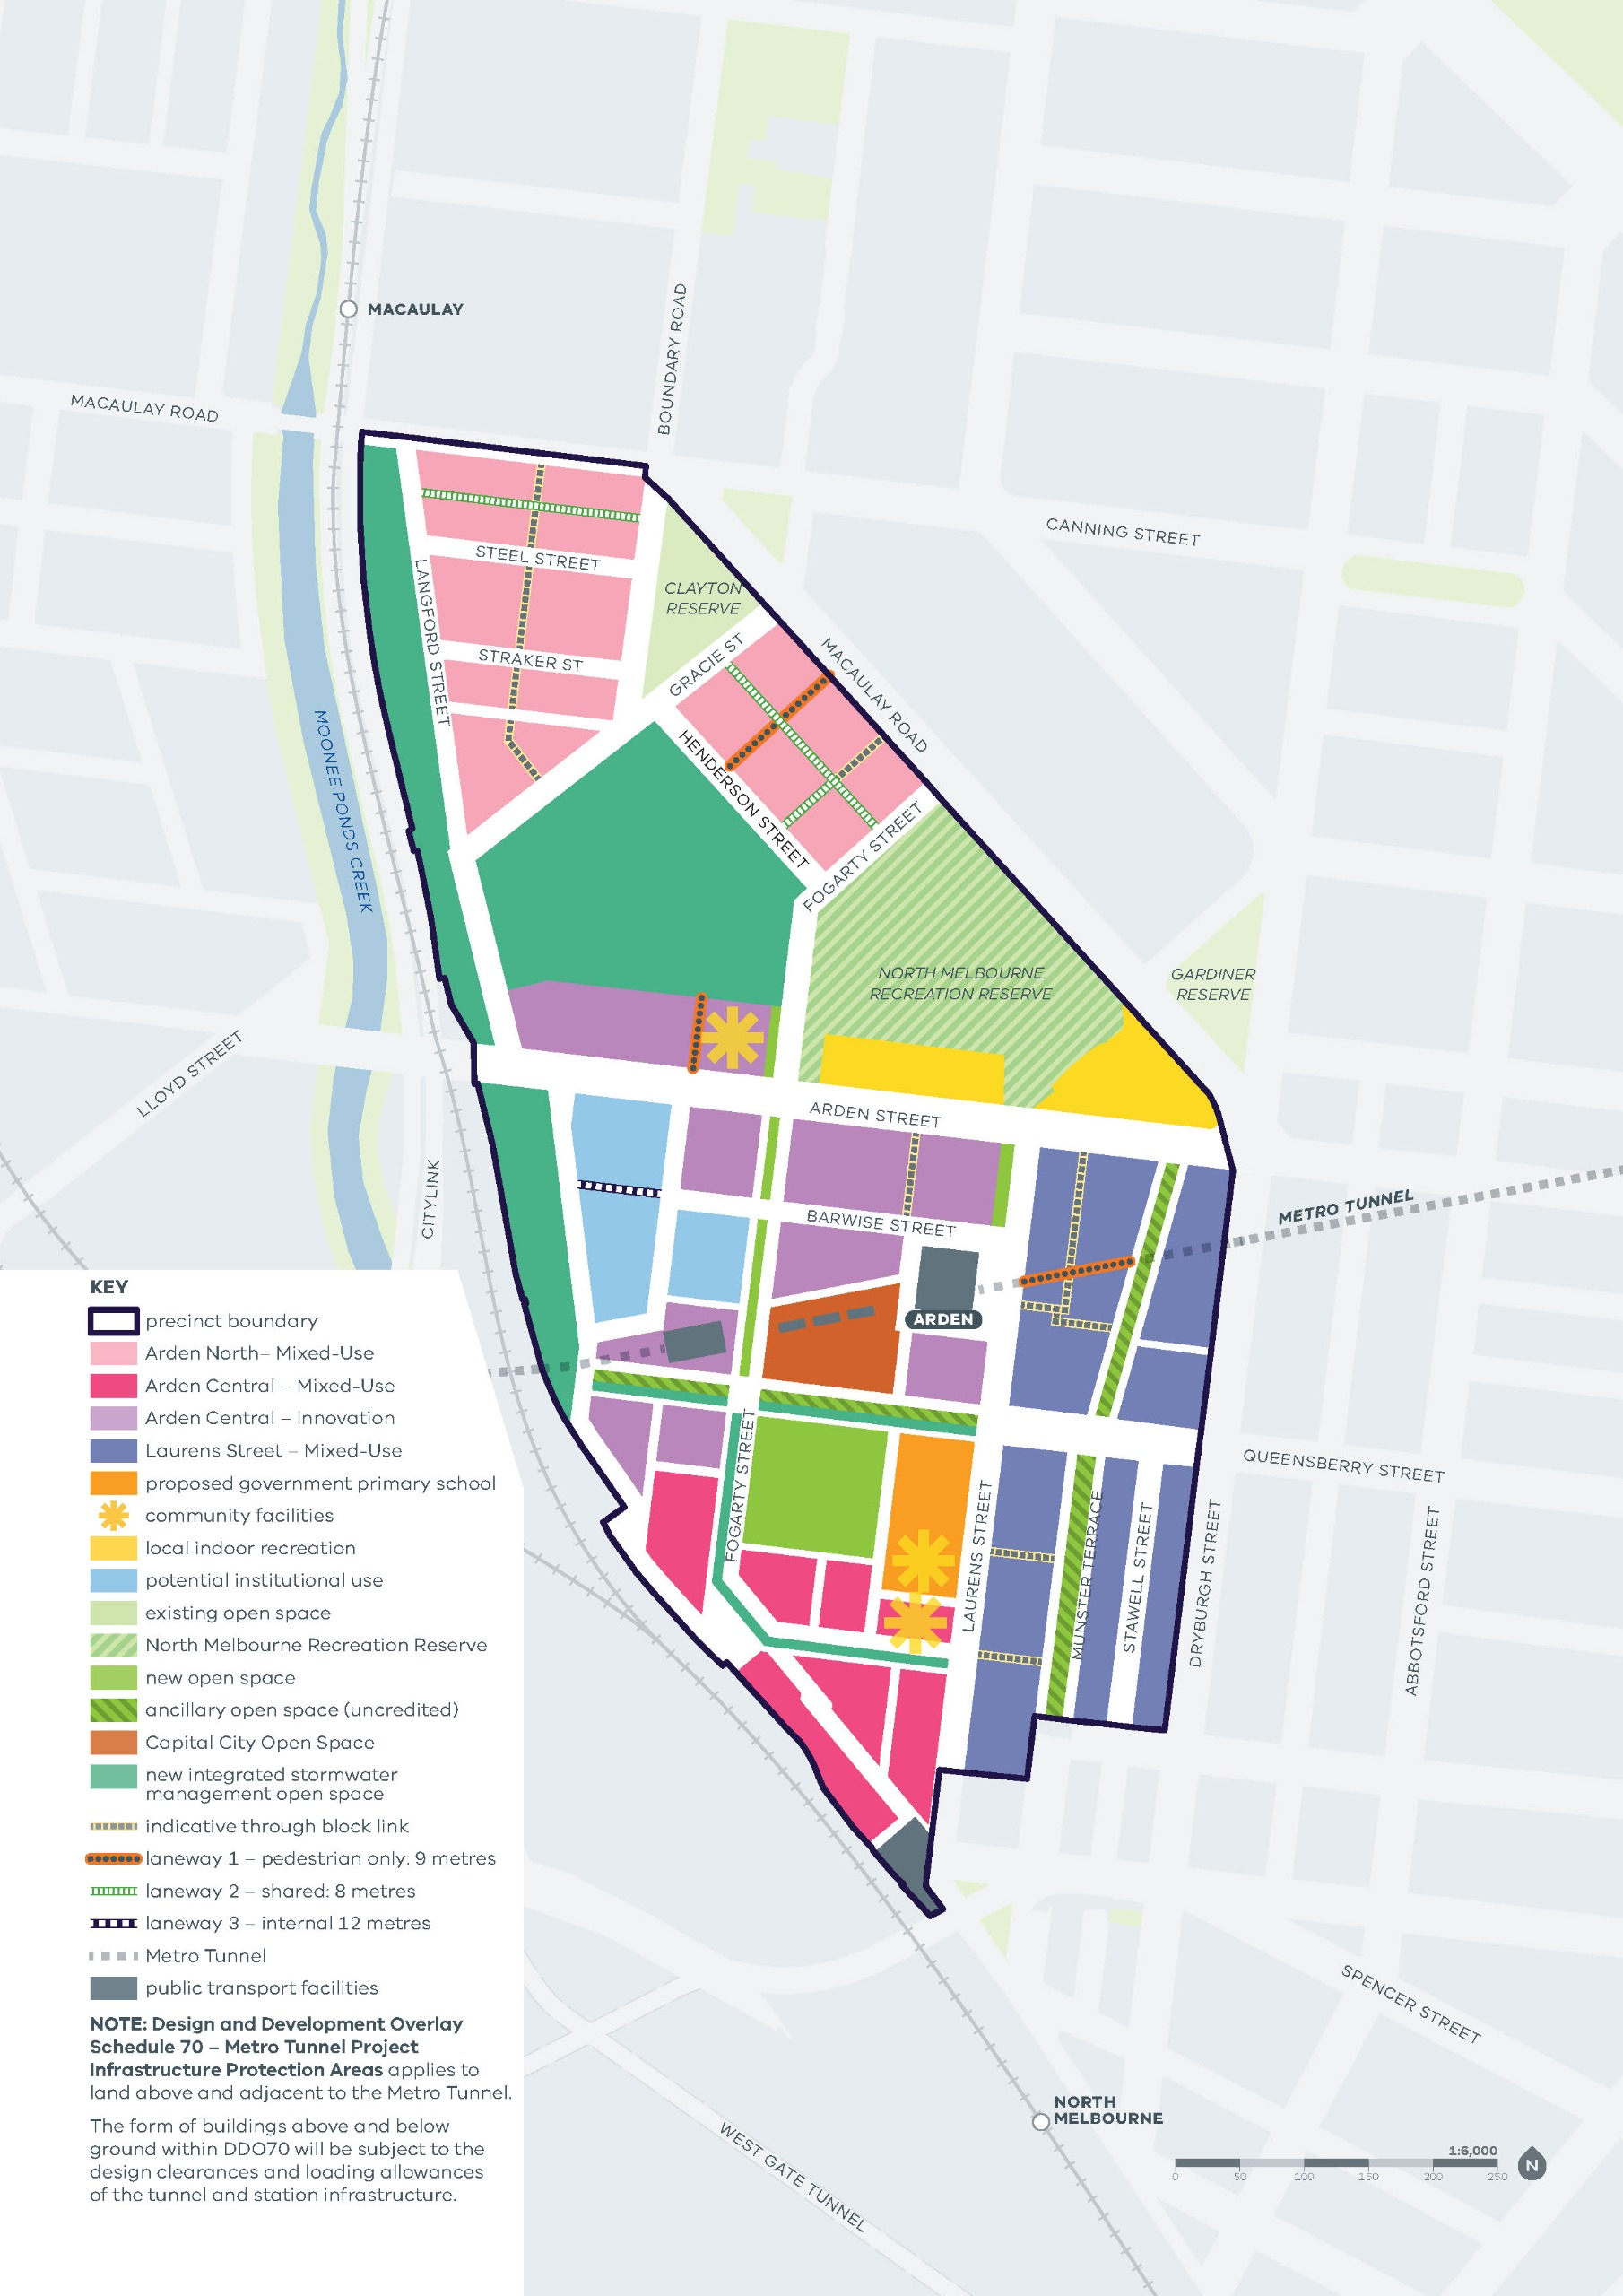 A proposed land use framework map of the Arden precinct detailing the potential future uses.